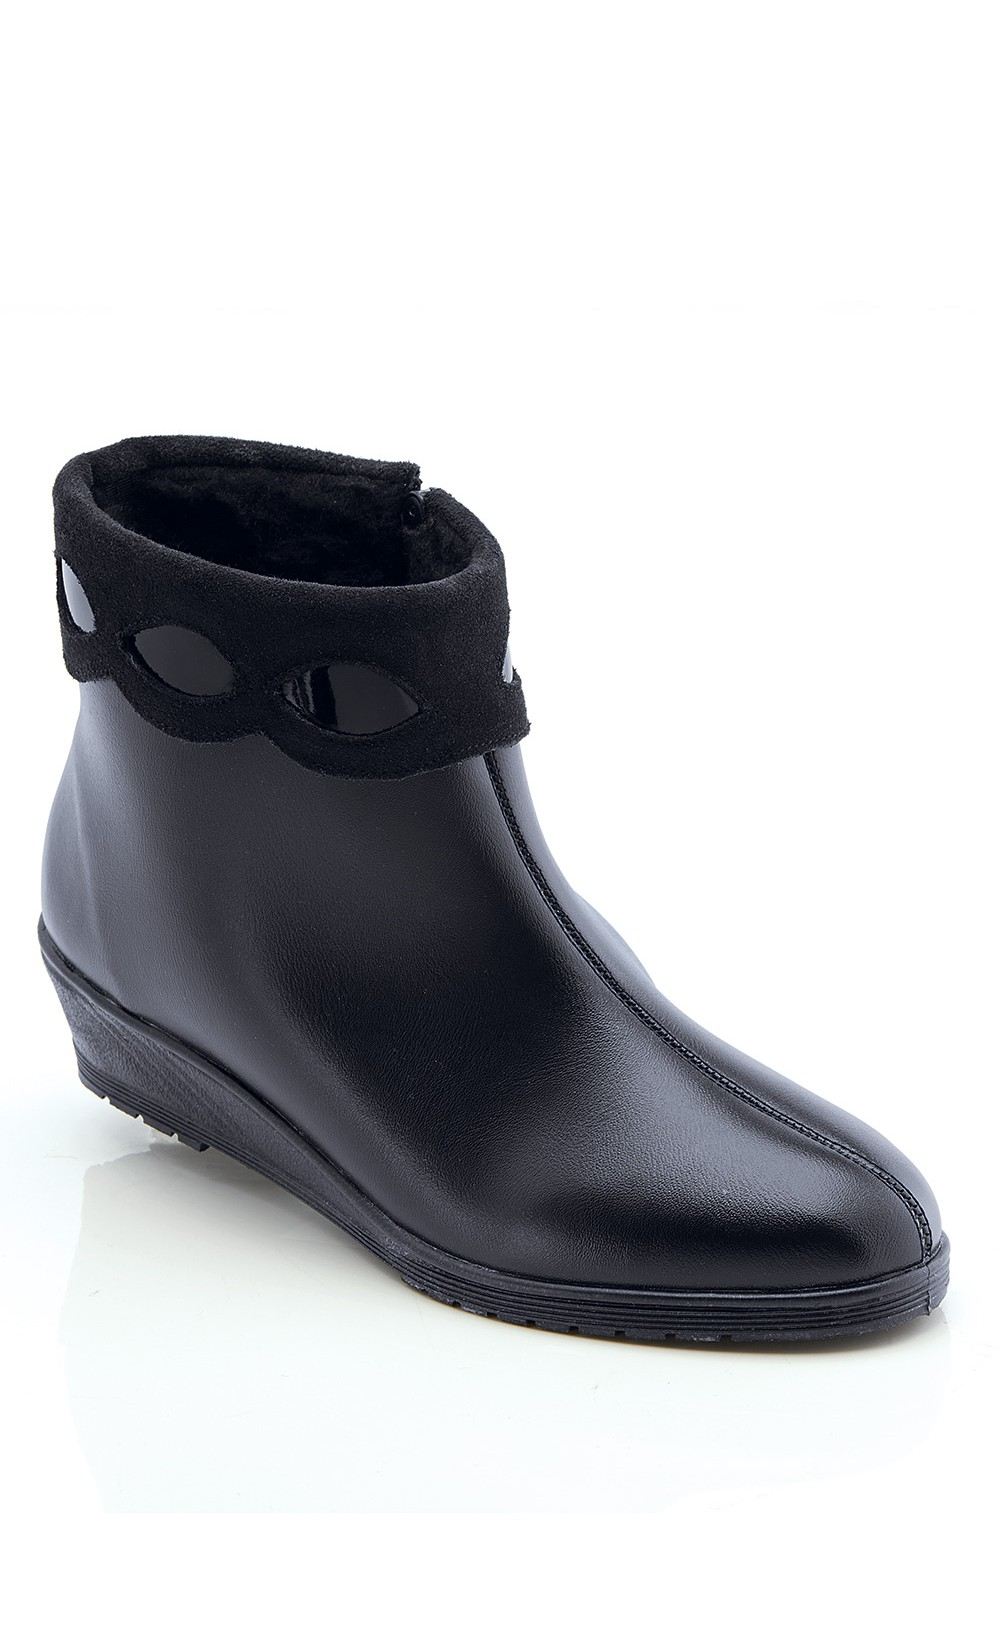 boots - OLAF